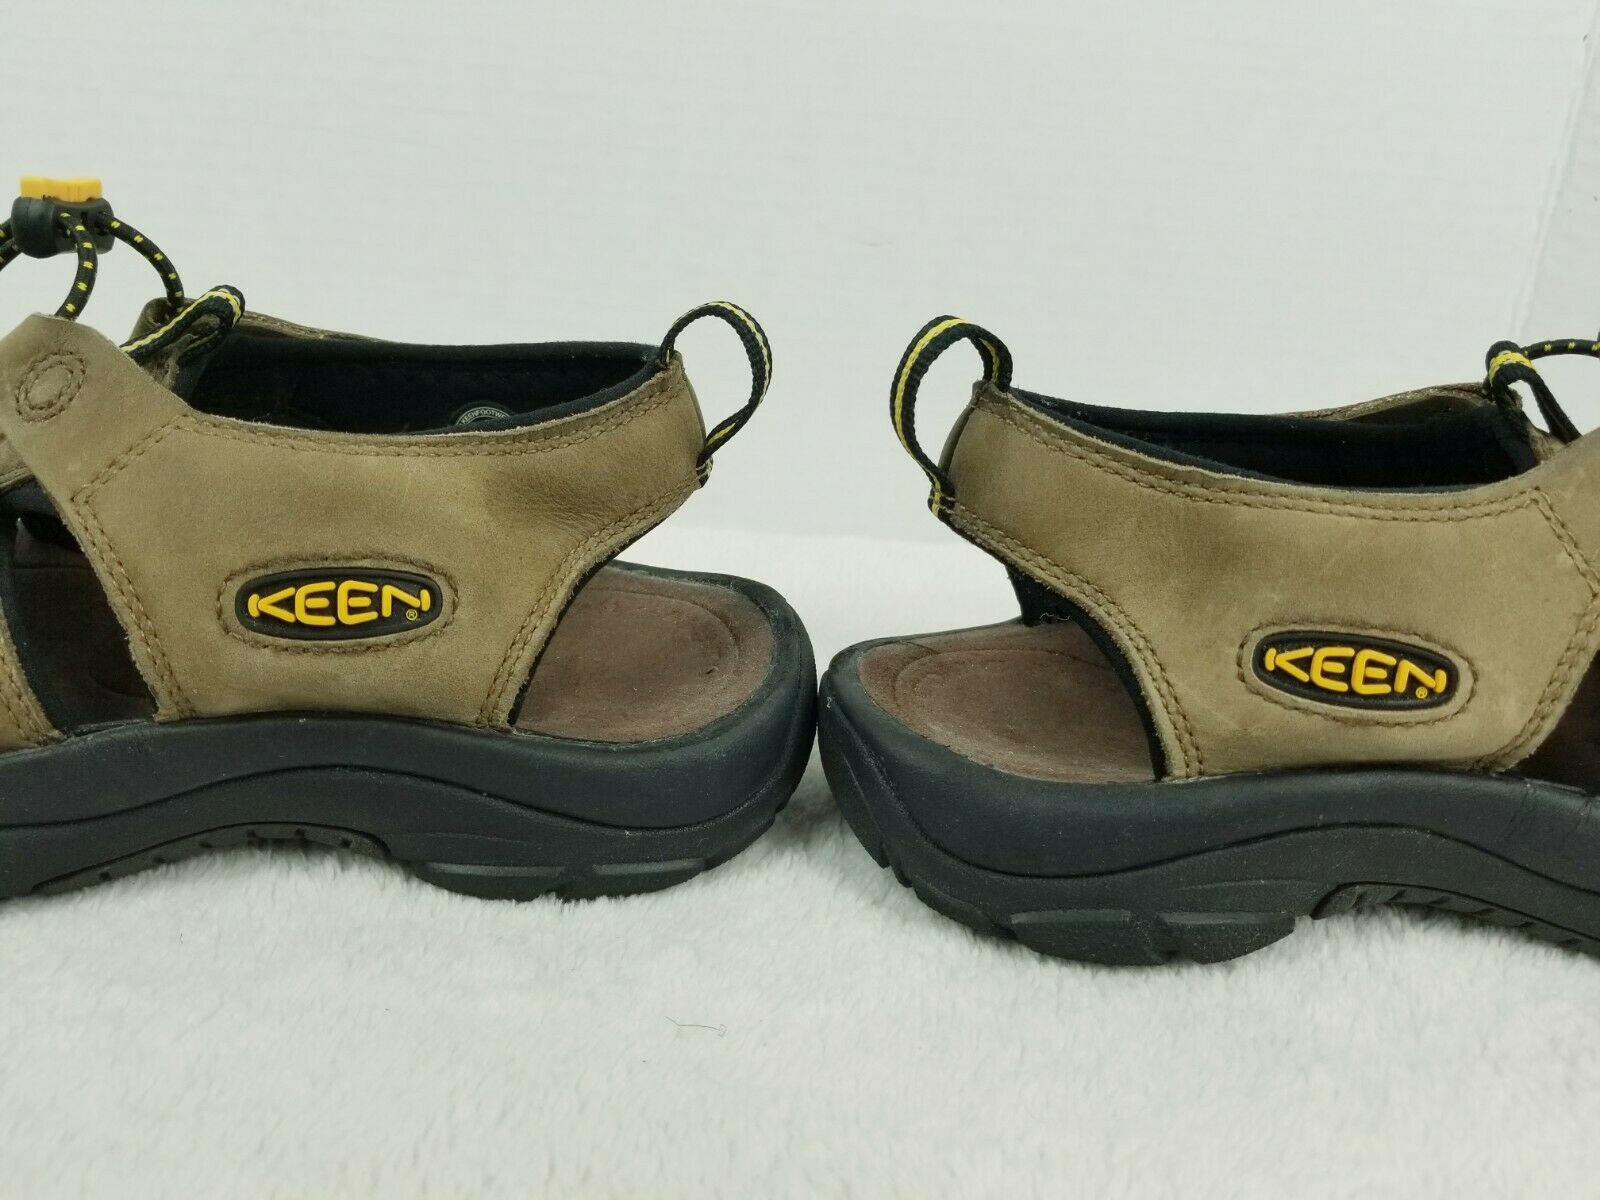 KEEN Newport Leather Hiking Sandals - 110220-BISN… - image 7